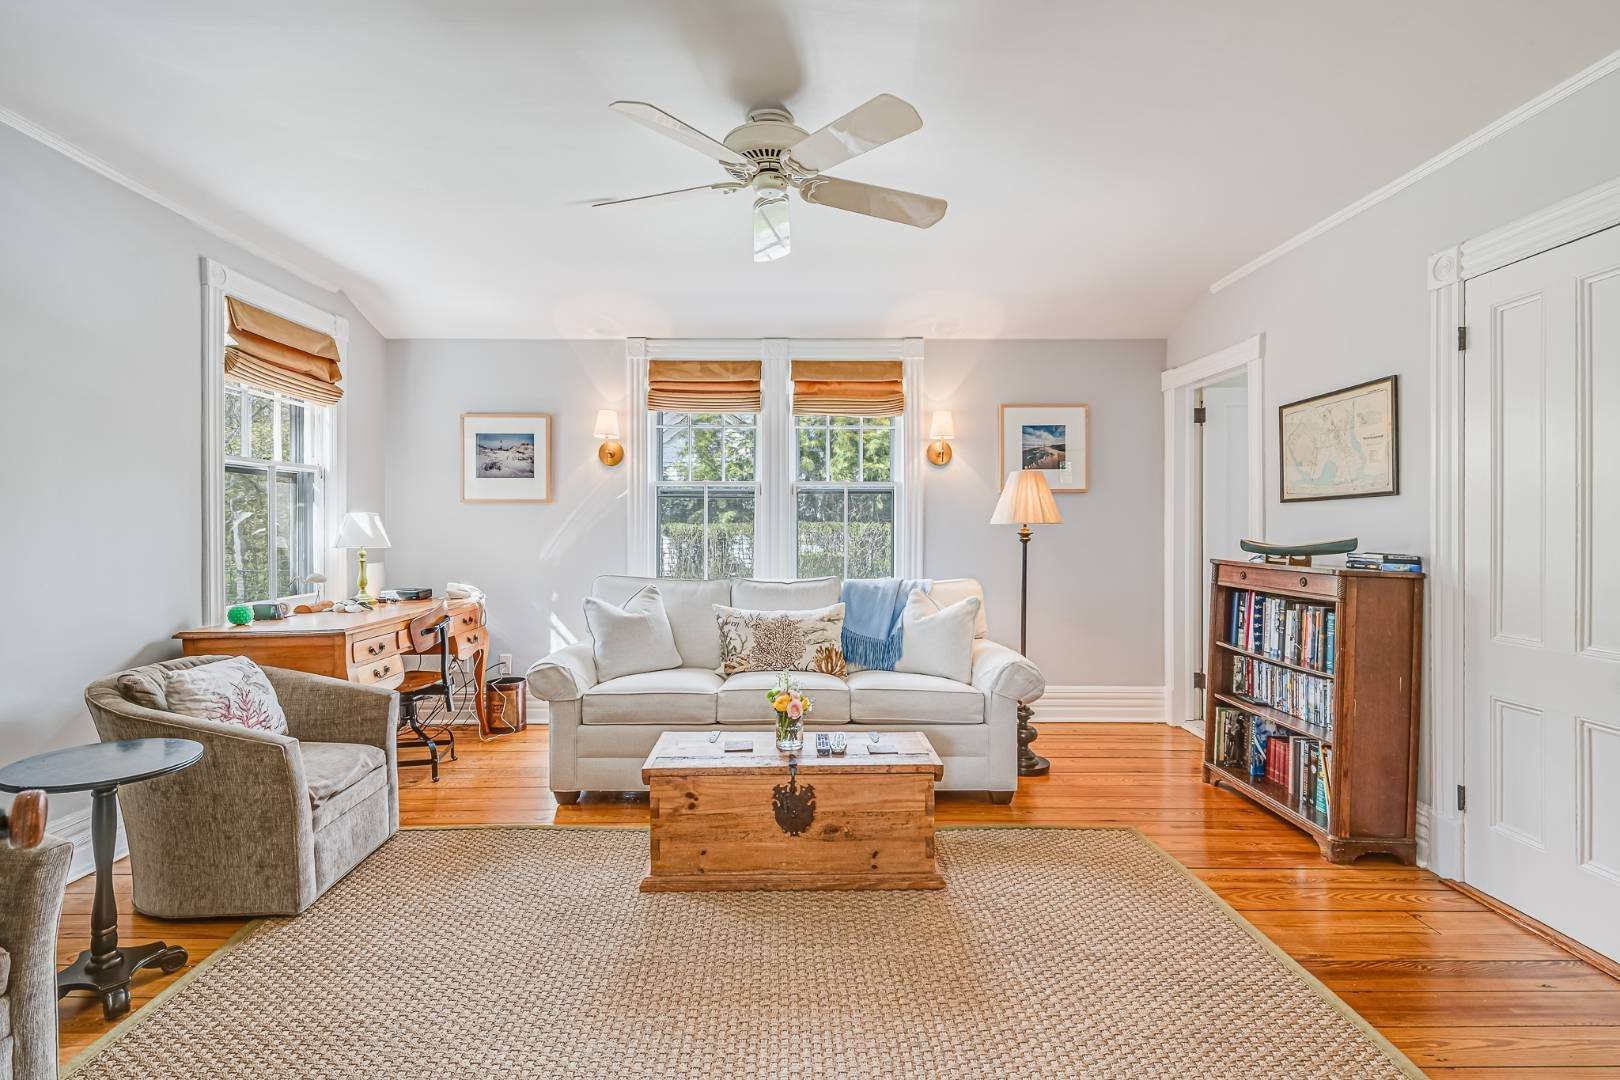 9. Single Family Home at Westhampton Beach Rental With A Heated Pool 19 Bayfield Lane, Westhampton Beach Village, NY 11978